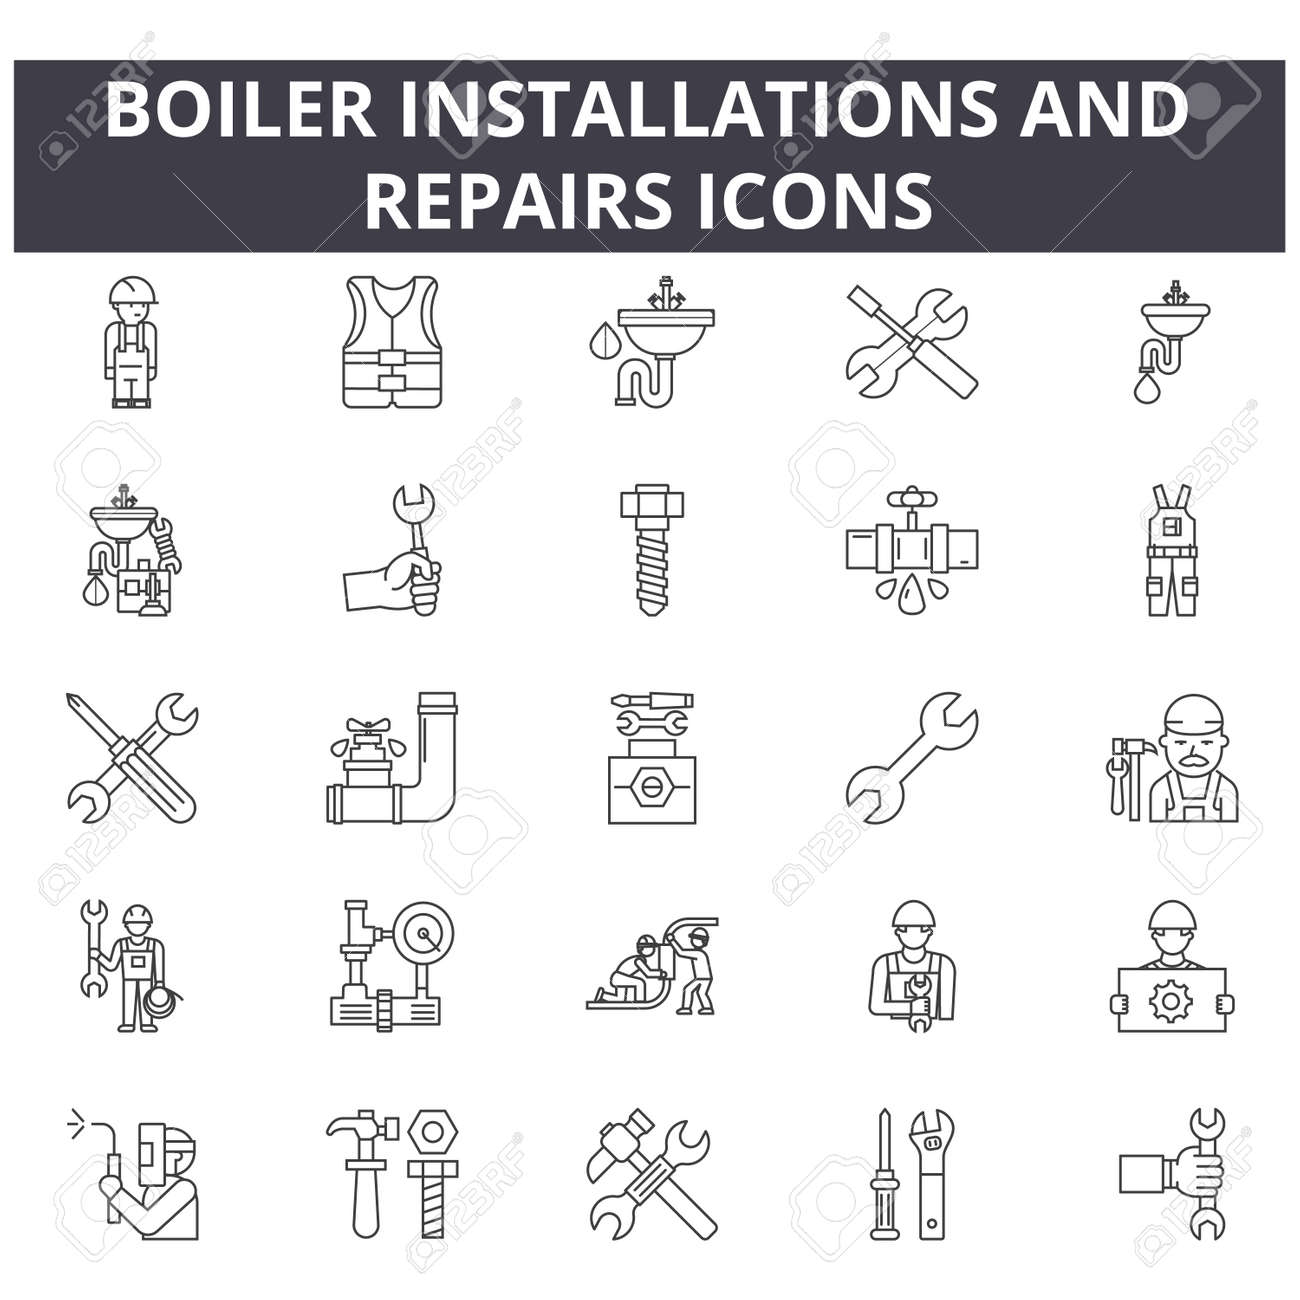 Boiler installations and repairs line icons for web and mobile. Editable stroke signs. Boiler installations and repairs outline concept illustrations - 119392032